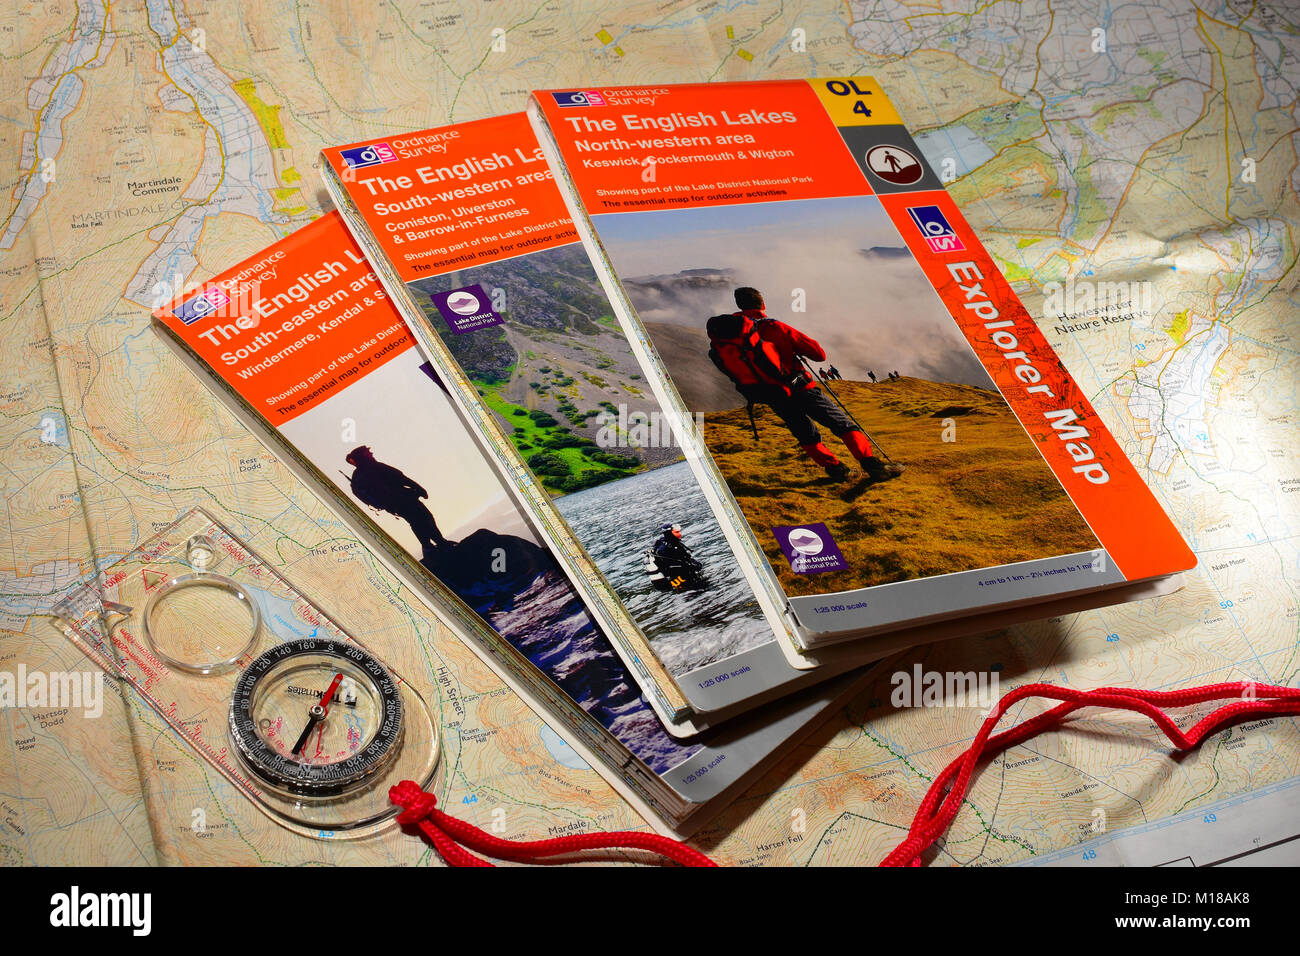 Map reading Compass and Ordinance Survey Maps - Stock Image